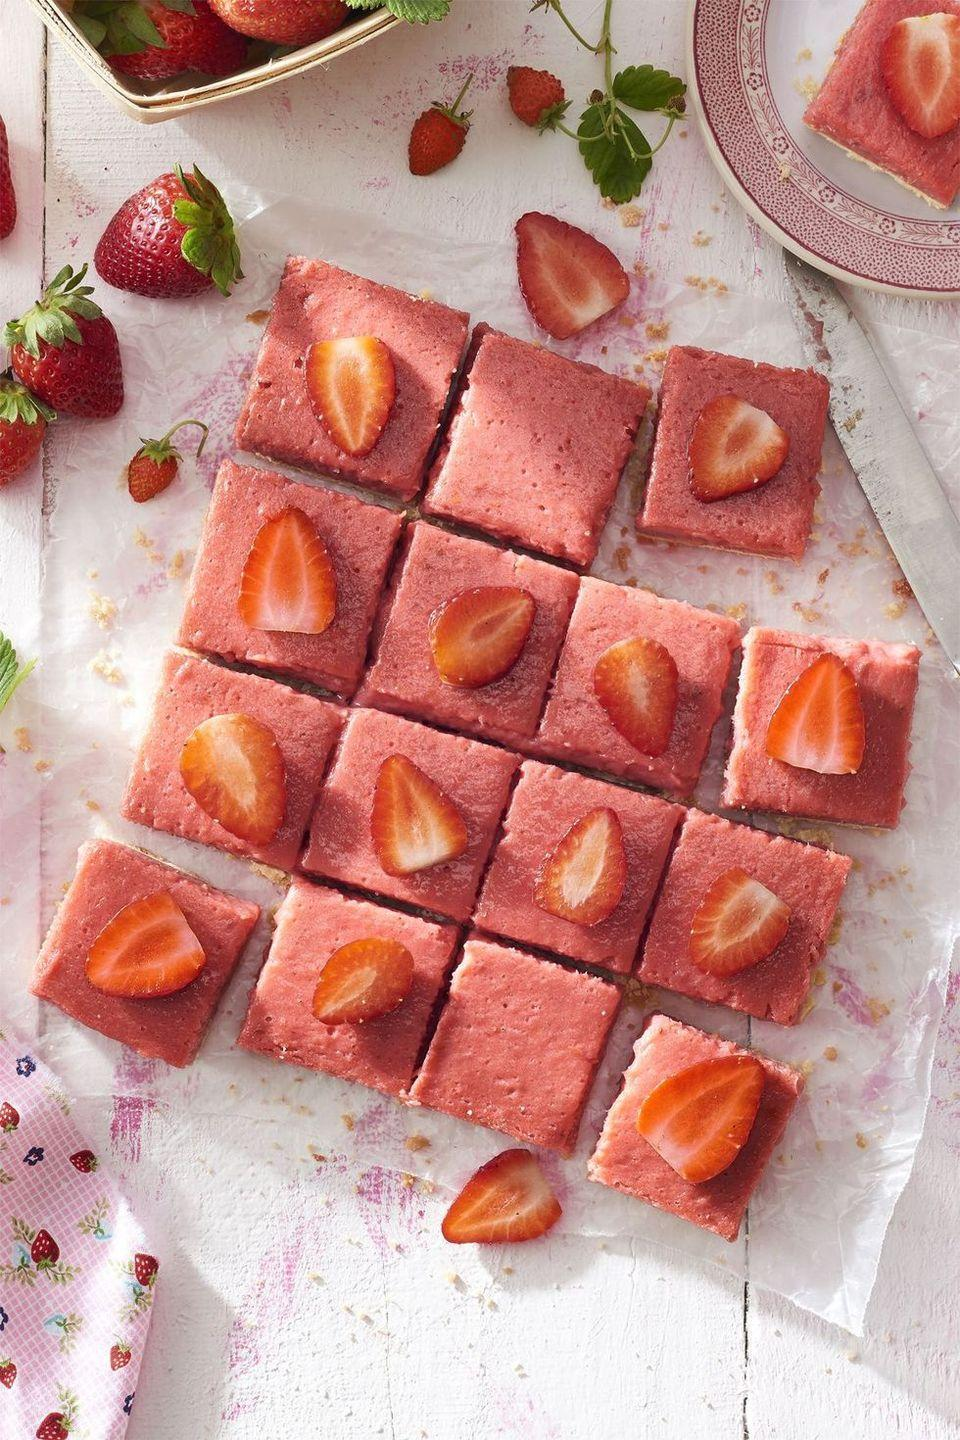 "<p>It's finally time to give rhubarb it's time to shine — and this sweet treat is the best place to start. </p><p><em><a href=""https://www.countryliving.com/food-drinks/recipes/a41984/strawberry-rhubarb-shortbread-bars-recipe/"" rel=""nofollow noopener"" target=""_blank"" data-ylk=""slk:Get the recipe from Country Living »"" class=""link rapid-noclick-resp"">Get the recipe from Country Living »</a></em></p>"